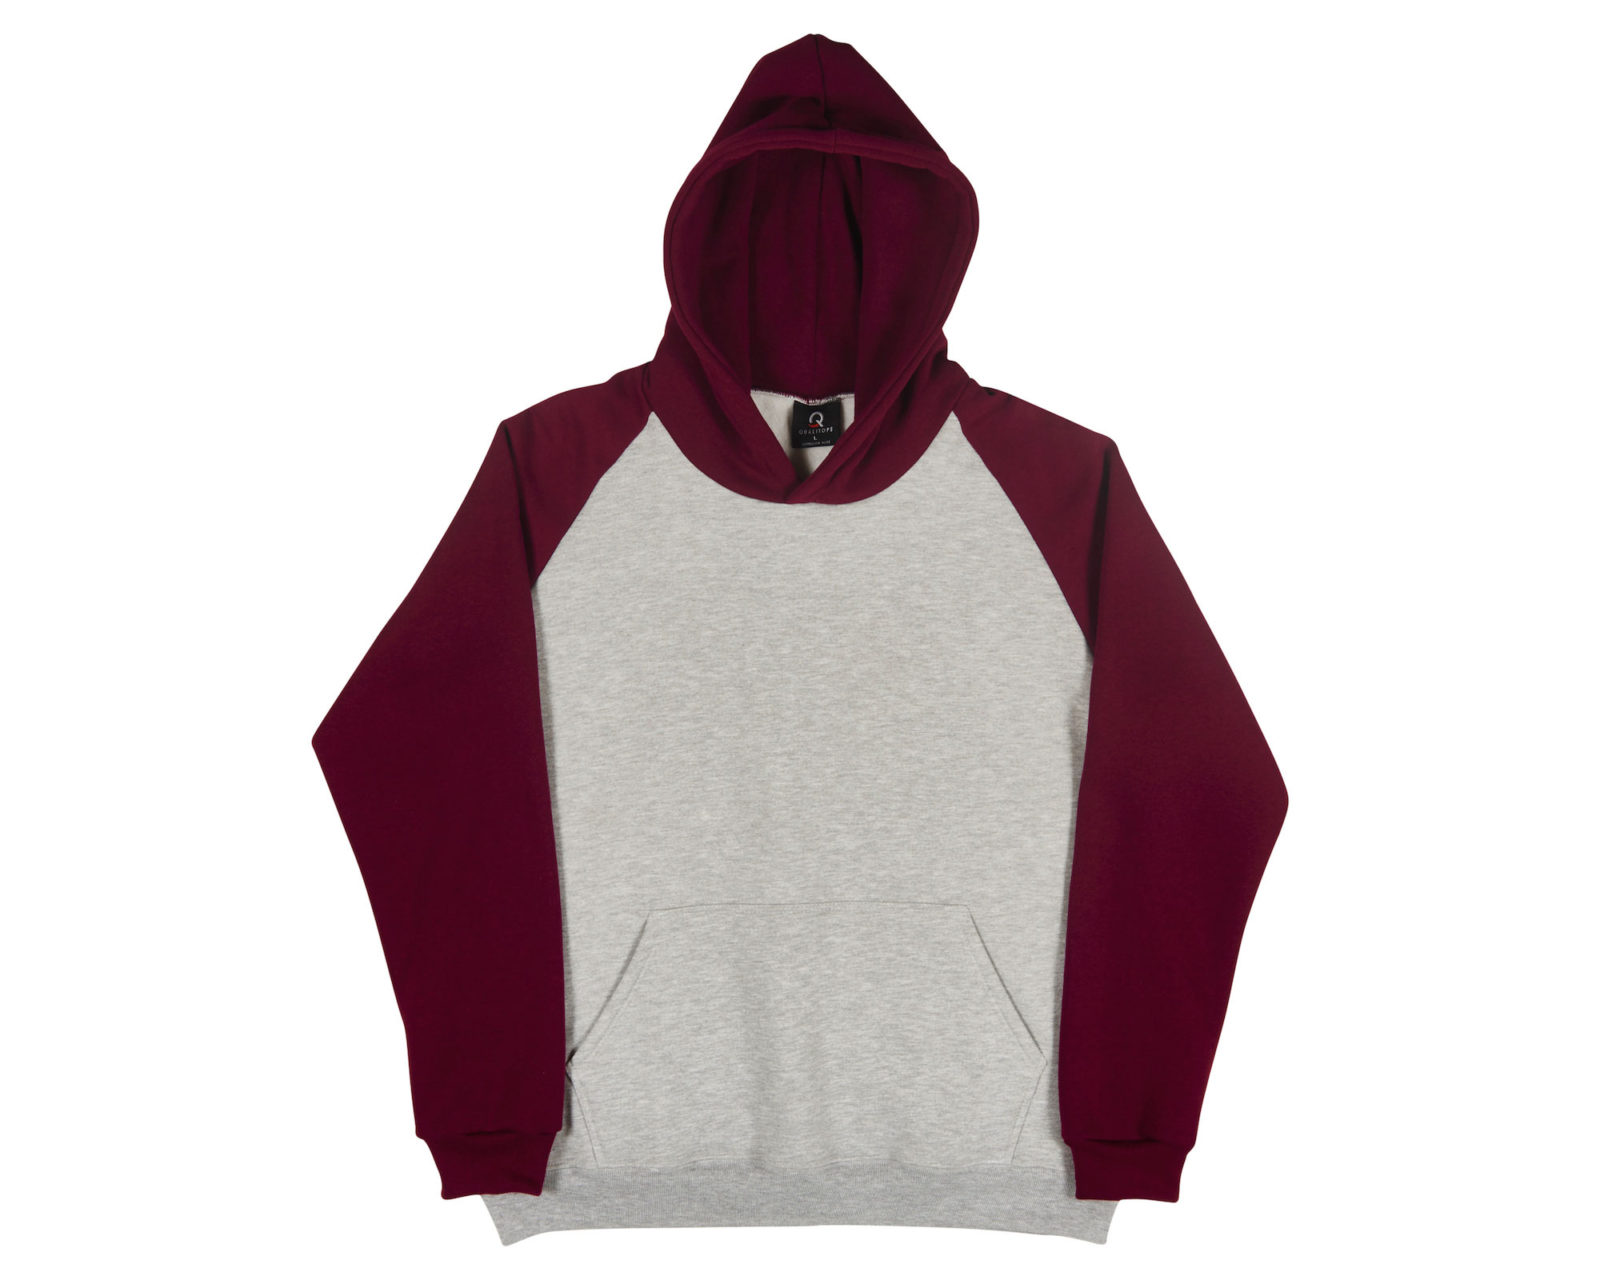 Qualitops Custom Made Mens Two Tone Raglean Sleeve Hoodie Polycotton Australian made clothing